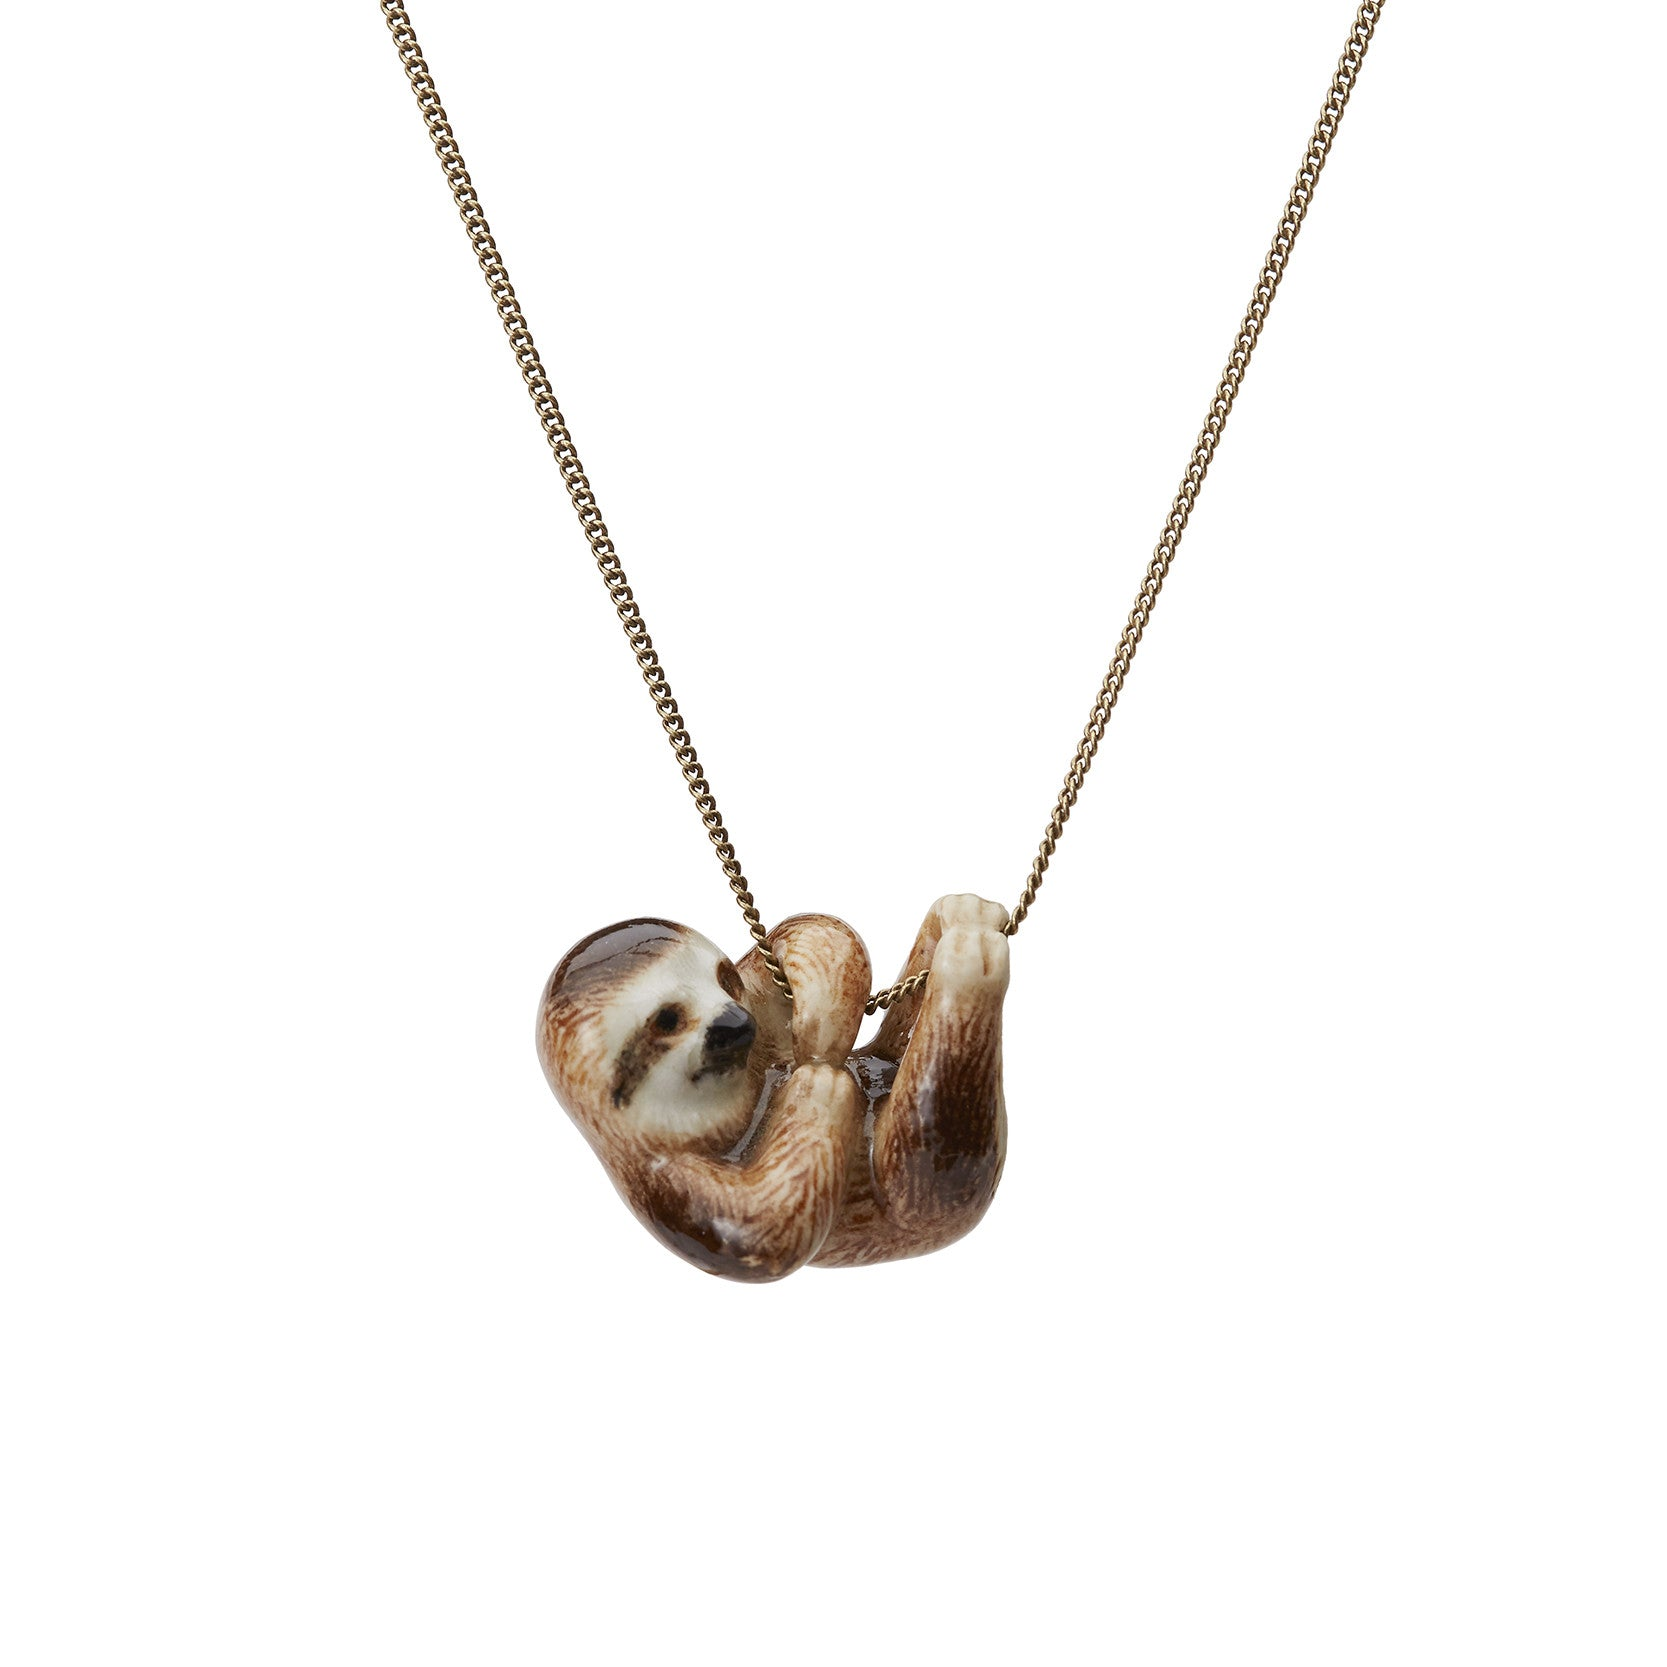 menagerie image jewellery pendant miry sloth collection small s